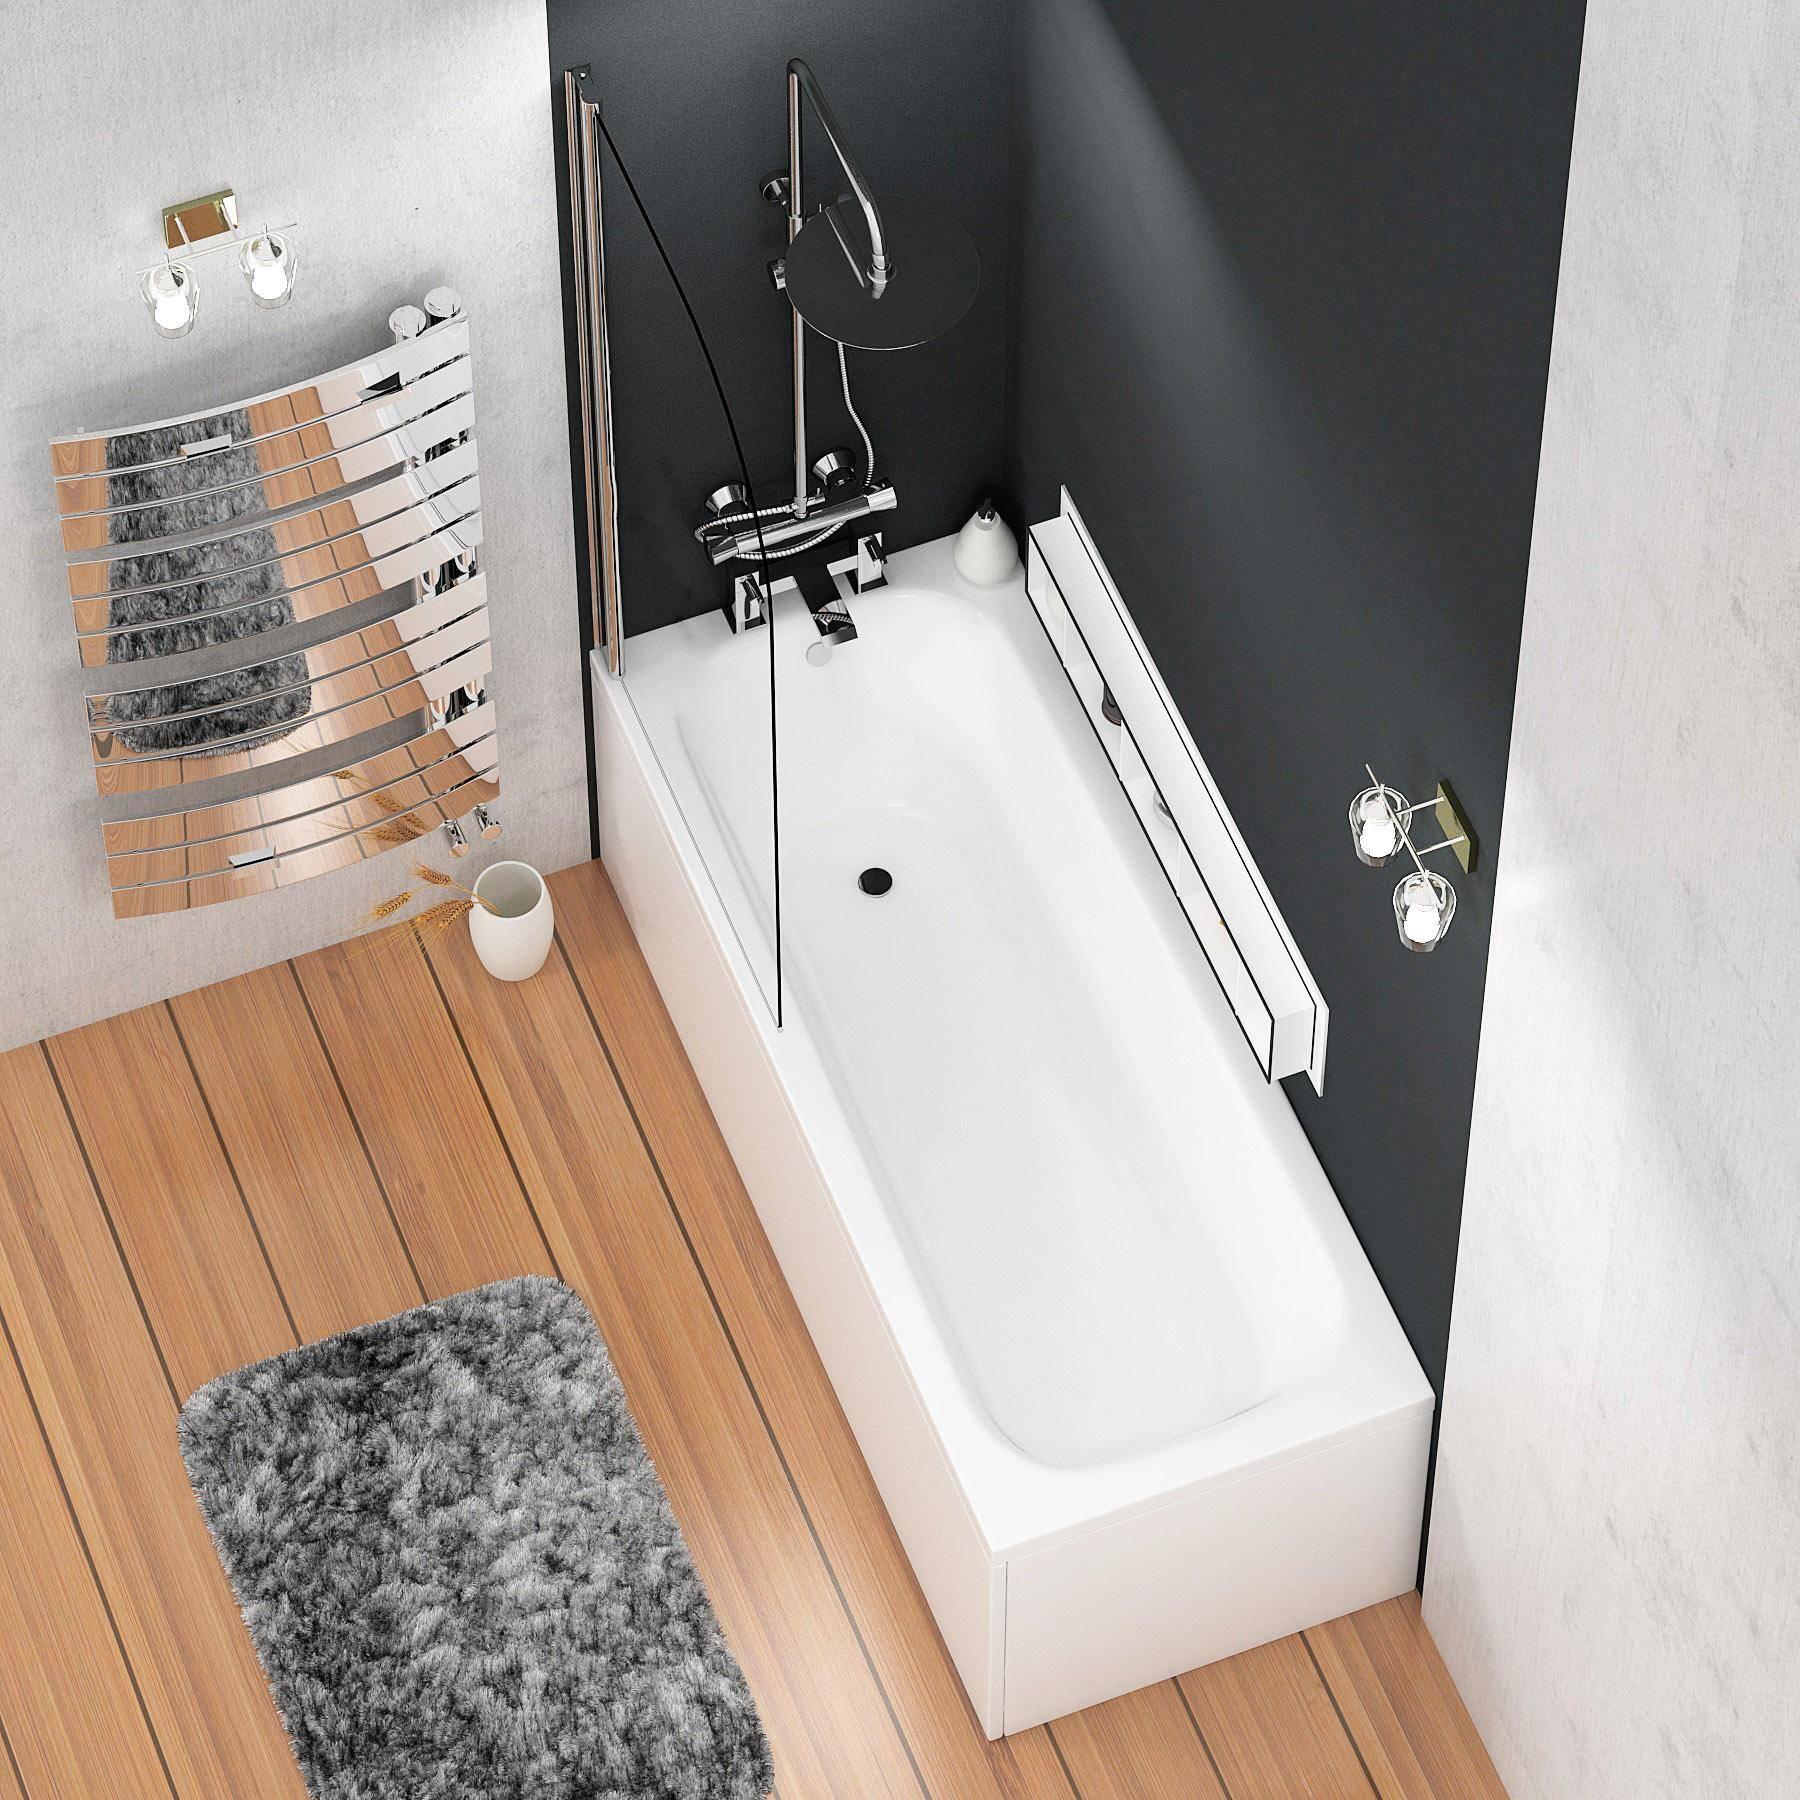 Royal Bathrooms Breeze Designer Round Edge Single Ended Acrylic Bath Tub with Shower Screen - Various Sizes